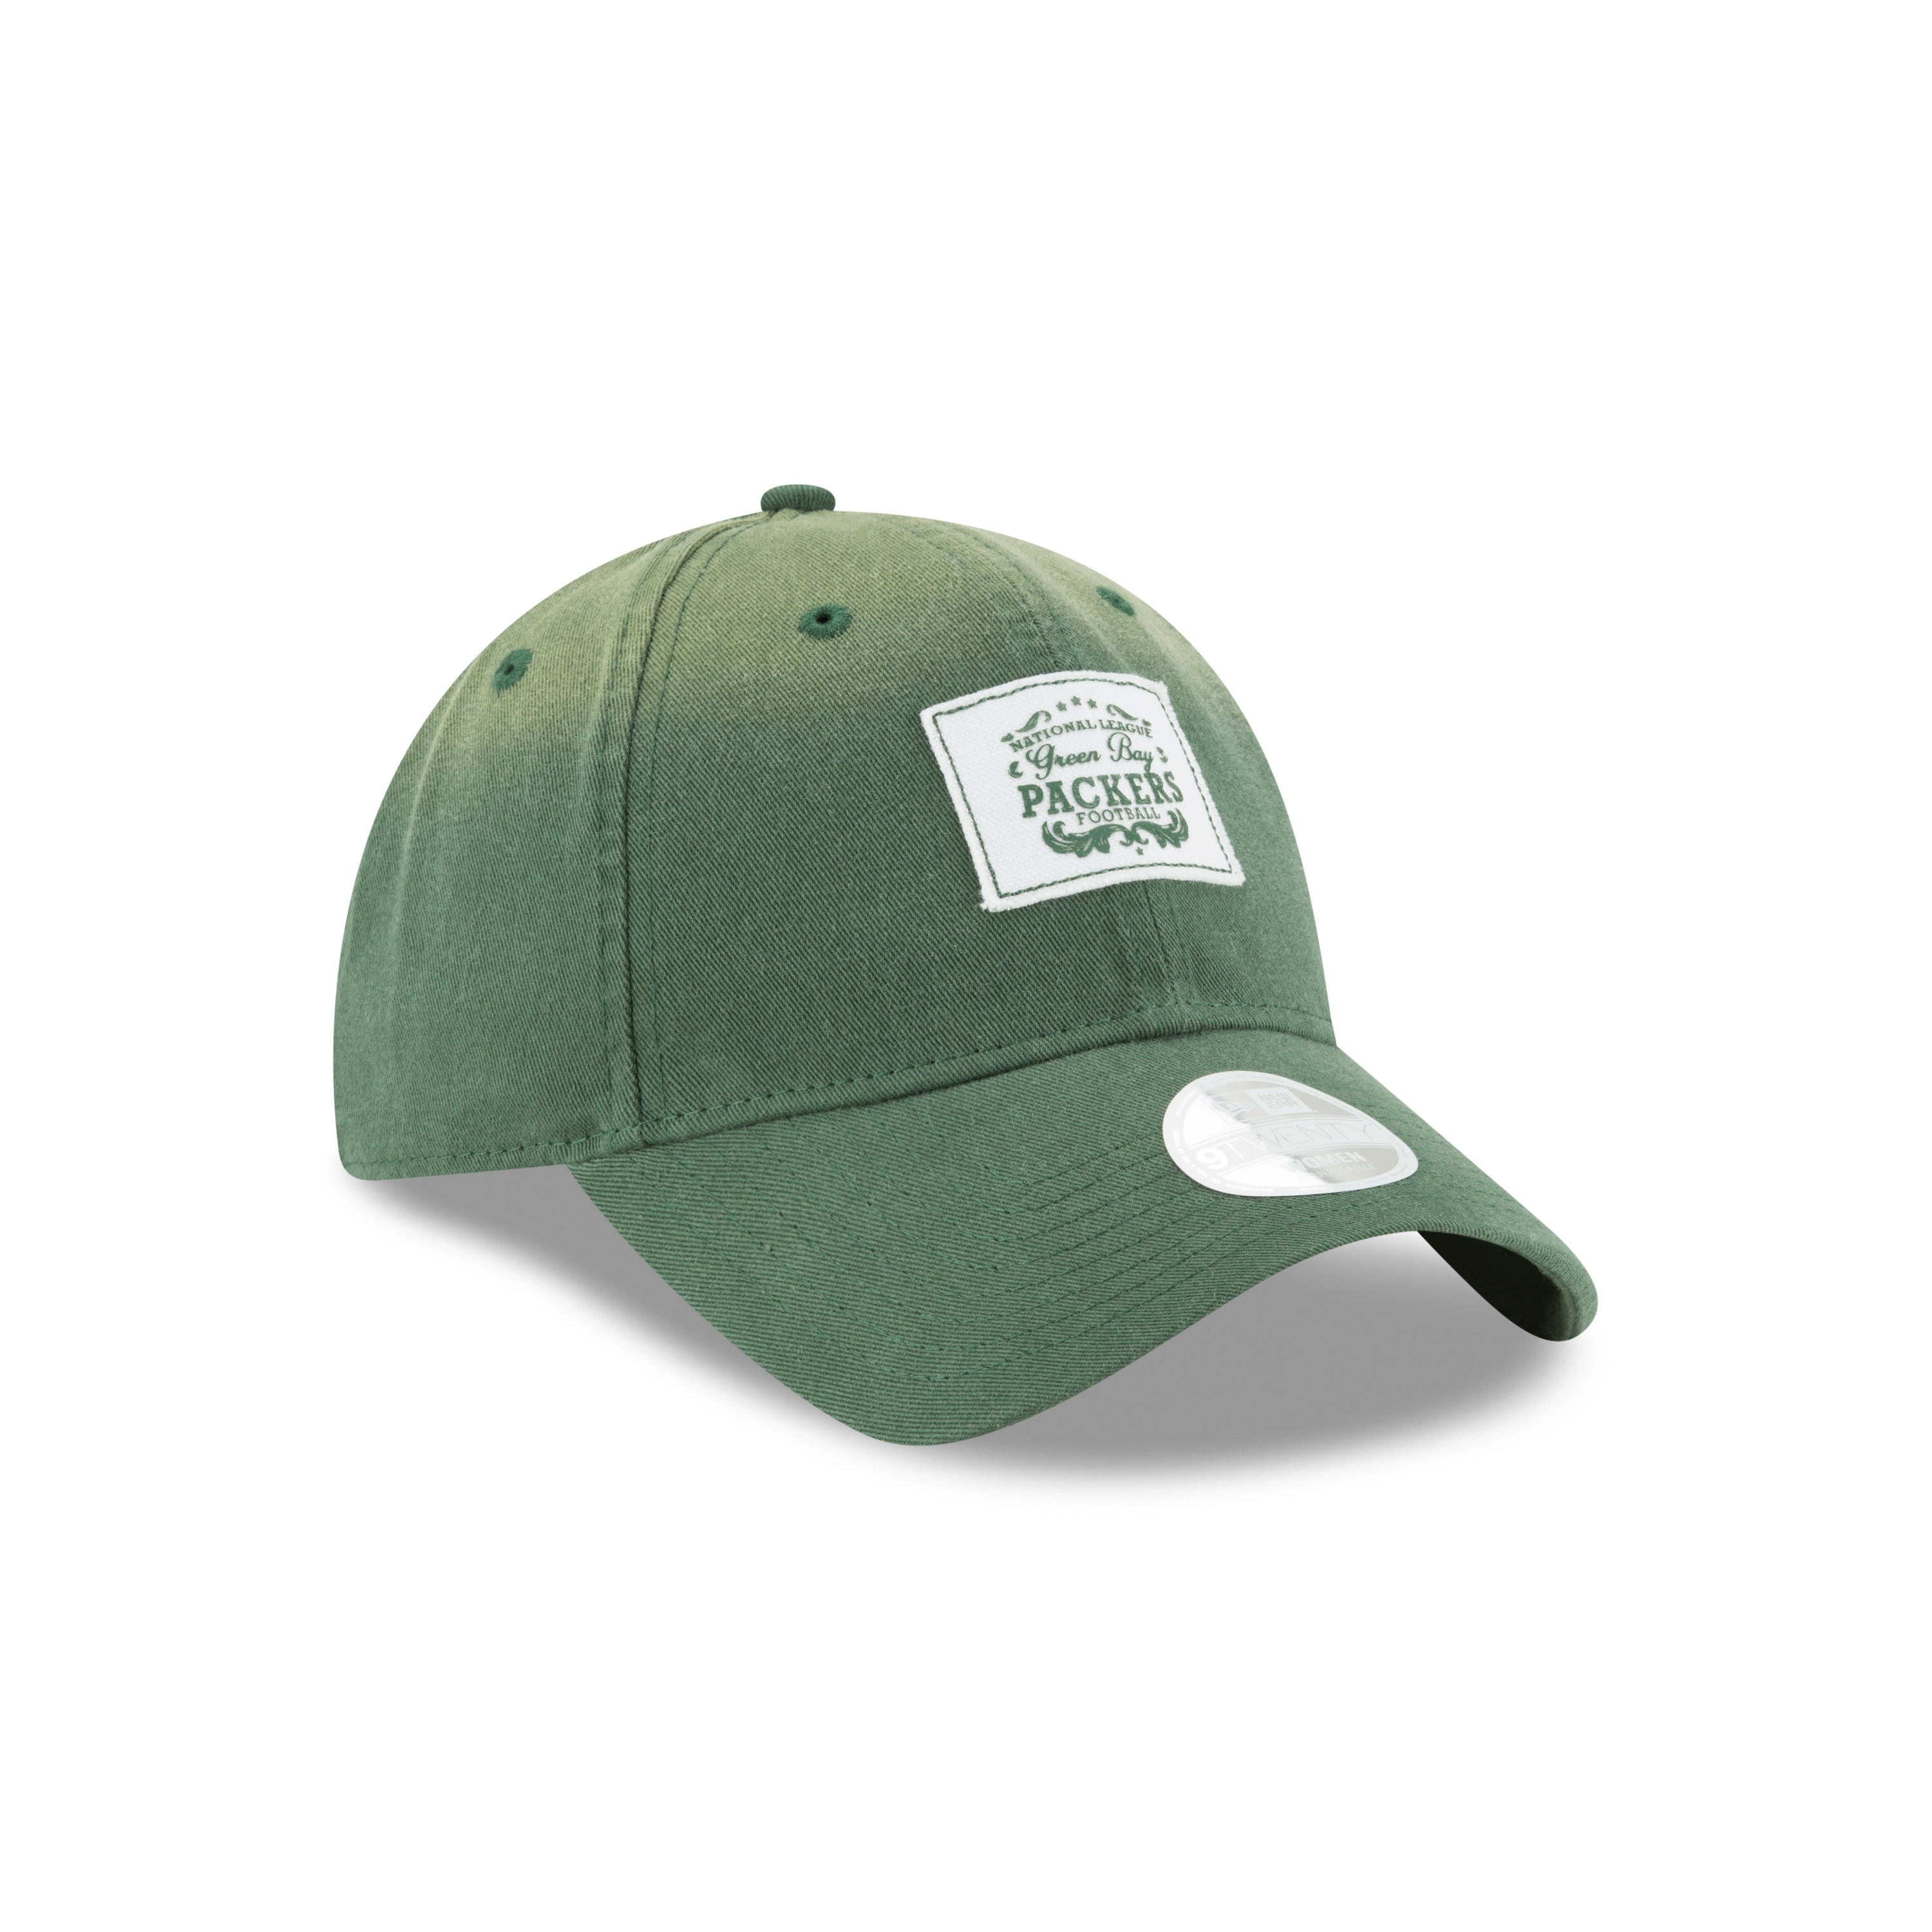 9dfb84dfe6c Shop Green Bay Packers 9TWENTY Vintage Patch Women s Adjustable Hat - Free  Shipping On Orders Over  45 - Overstock - 20529033